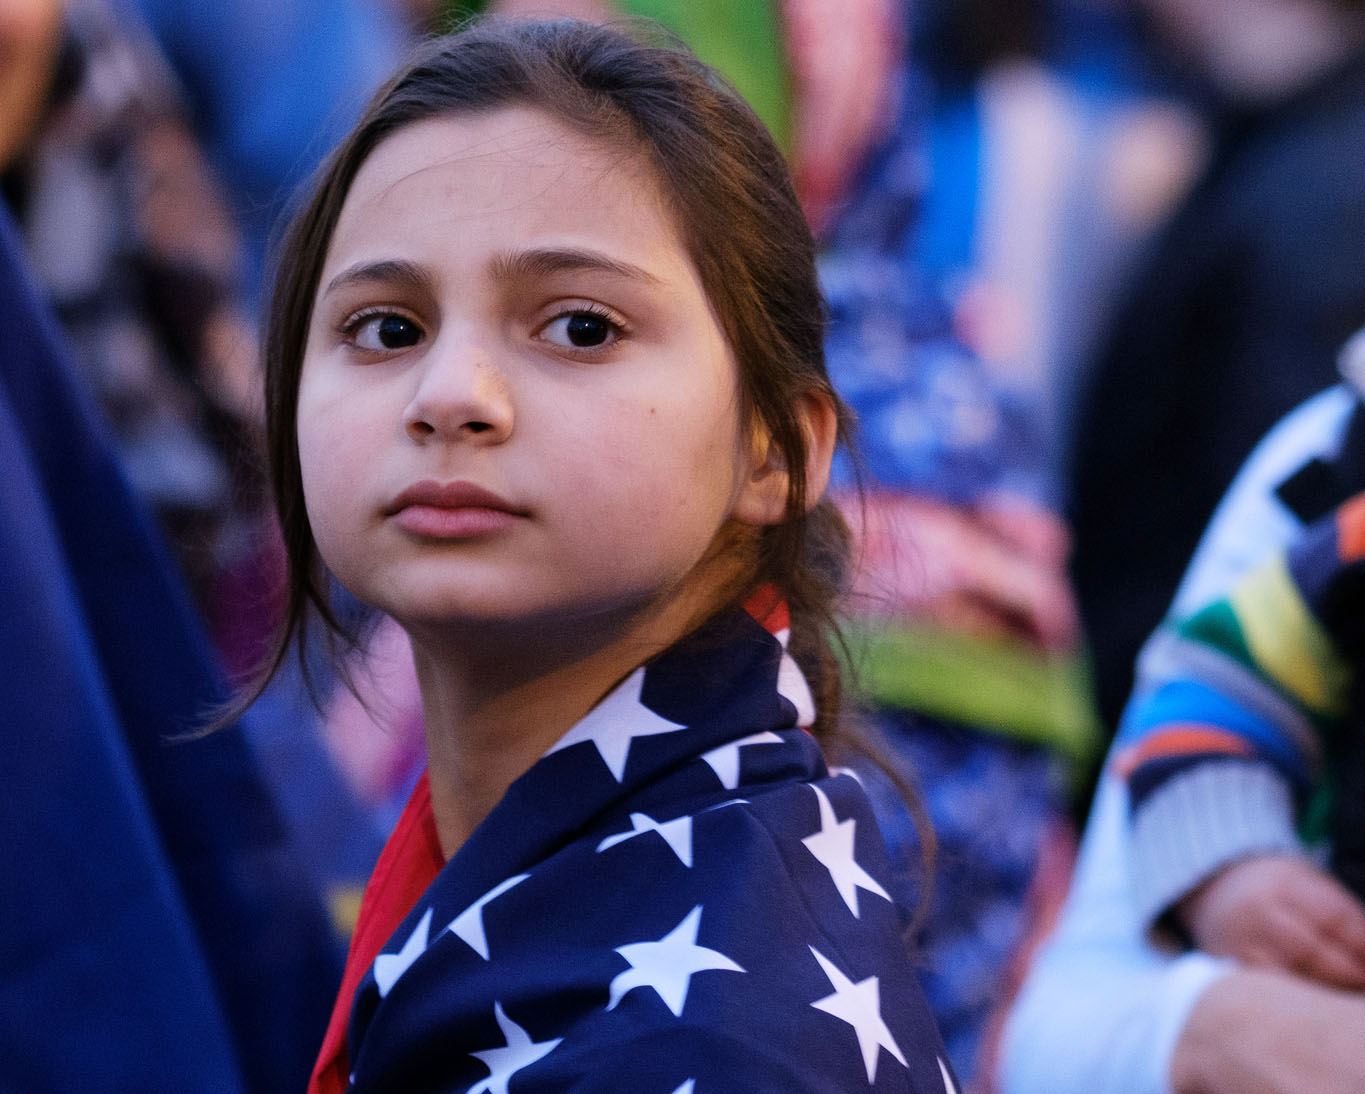 Girl wearing flag